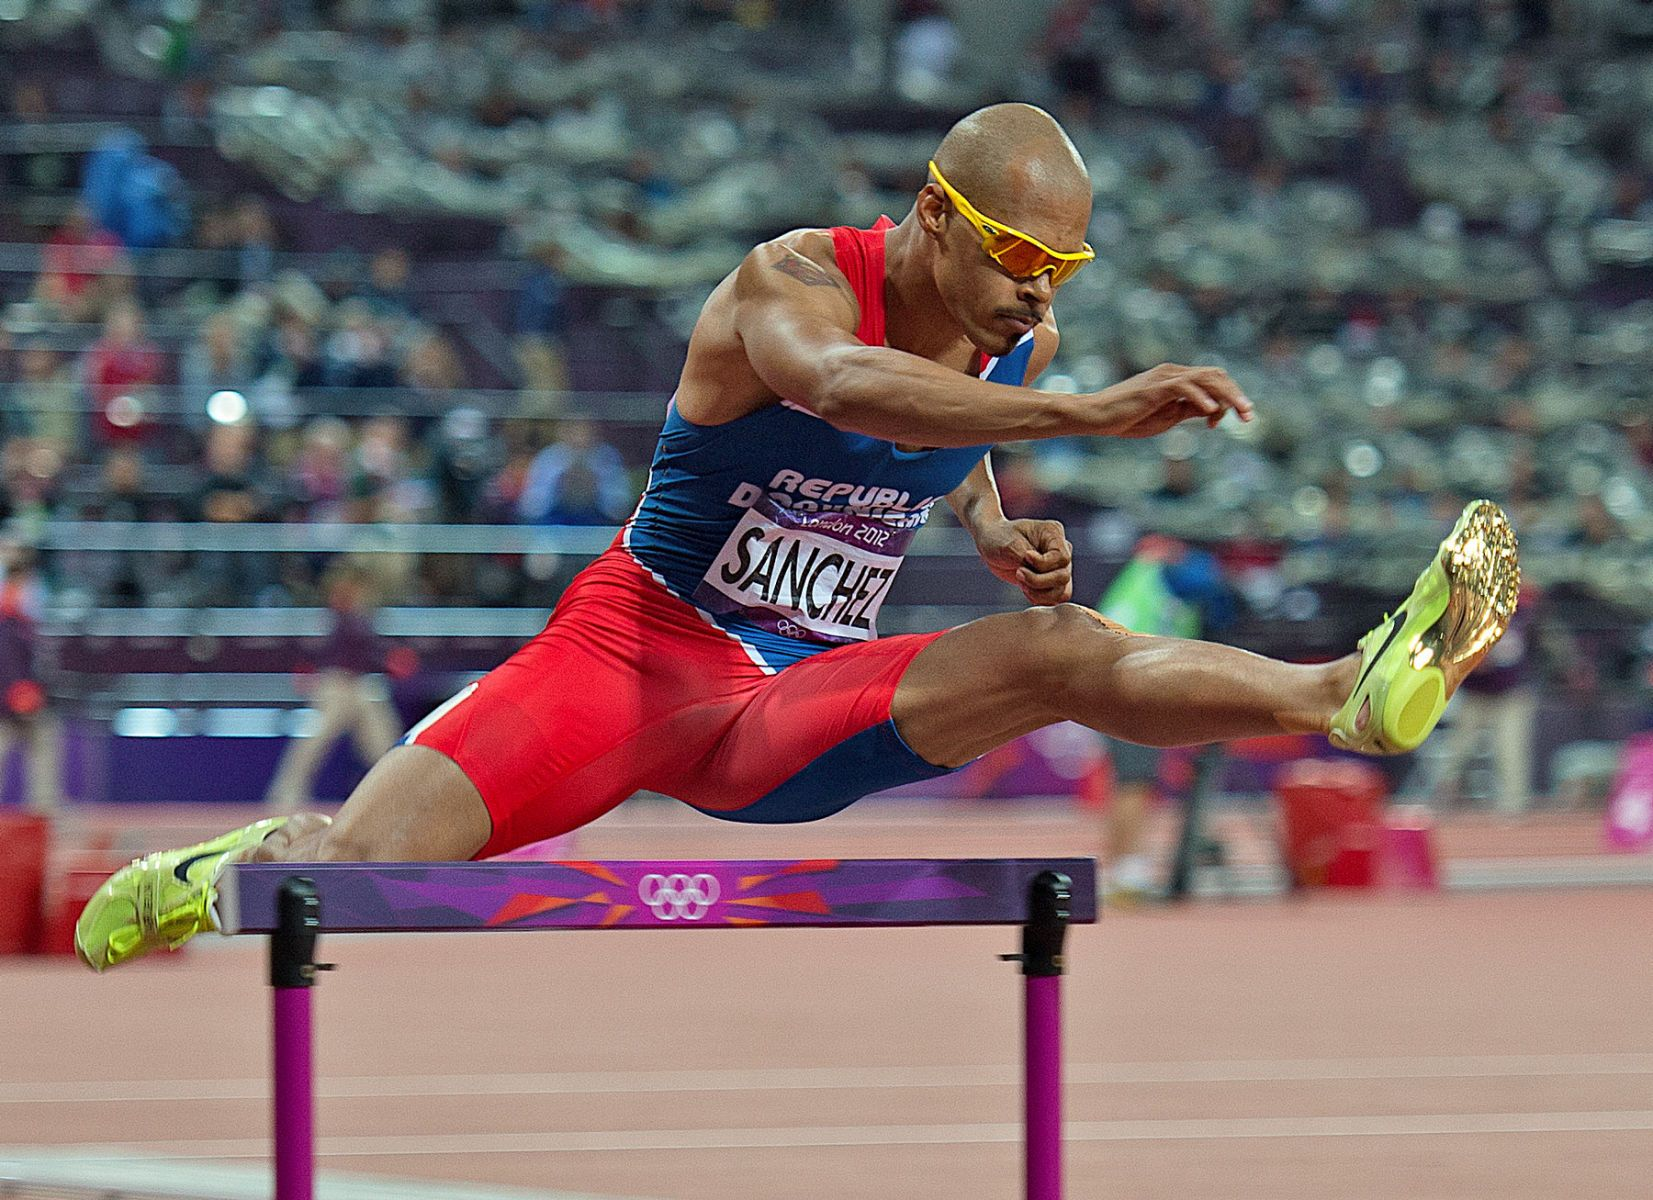 1london2012_felix_sanchez_400mh_track_and_field_image_jeff_cohen_photo_lb.jpg